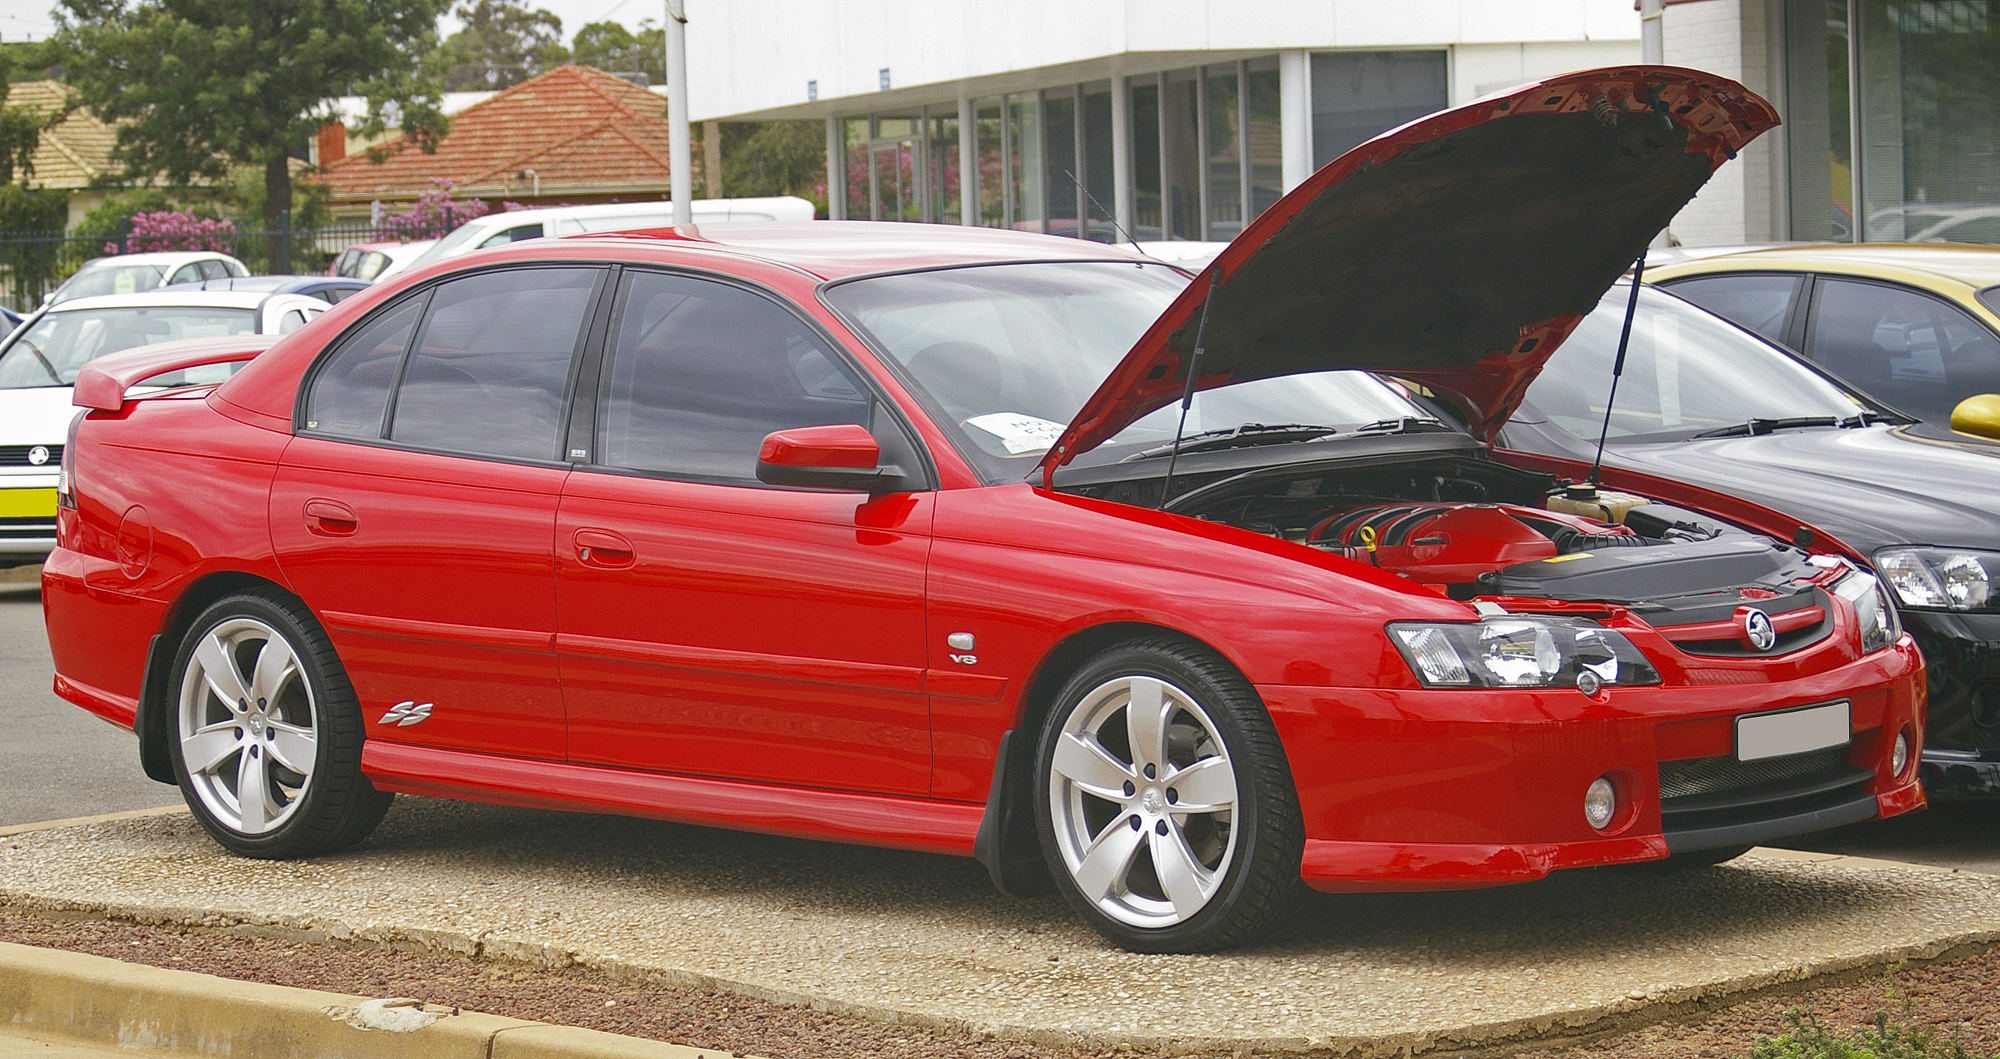 File2002 2003 holden commodore vy ss sedang wikimedia commons file2002 2003 holden commodore vy ss sedang vanachro Images